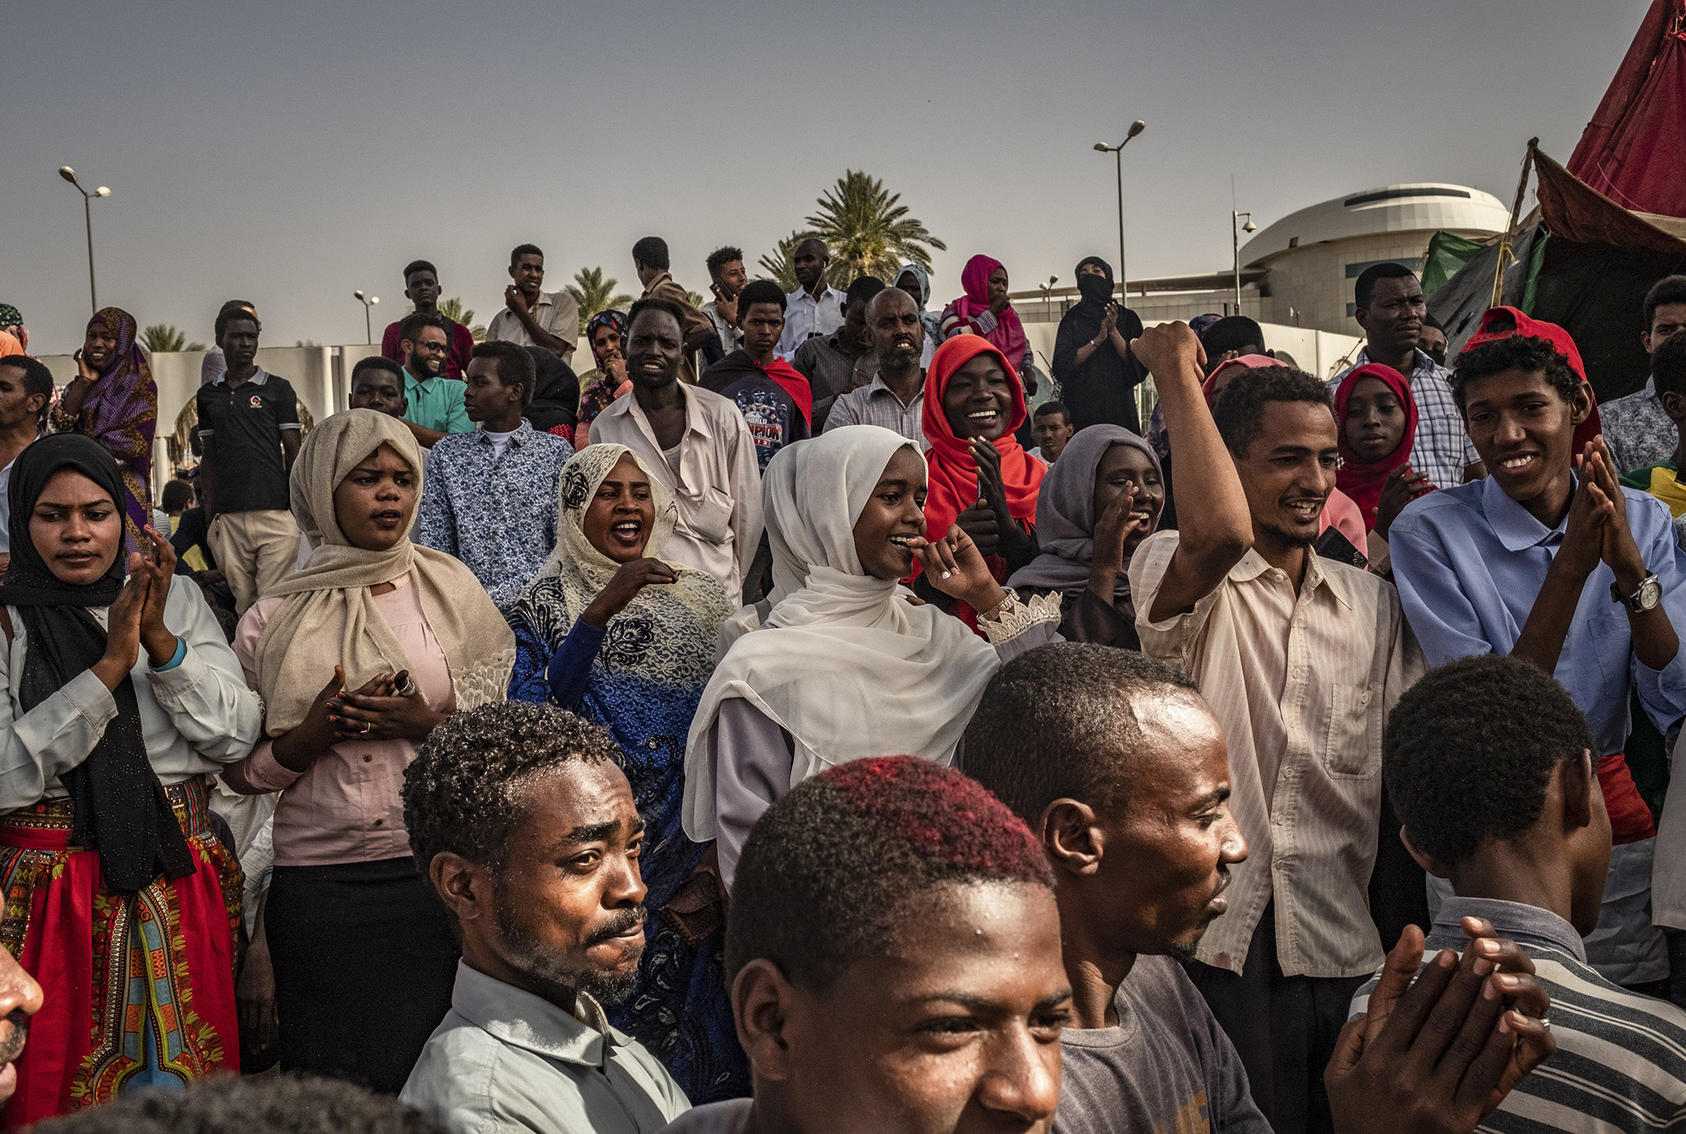 Men and women listen to music, sing and chant during a sit-in at the military headquarters in Khartoum, Sudan, April 27, 2019. (Bryan Denton/The New York Times)